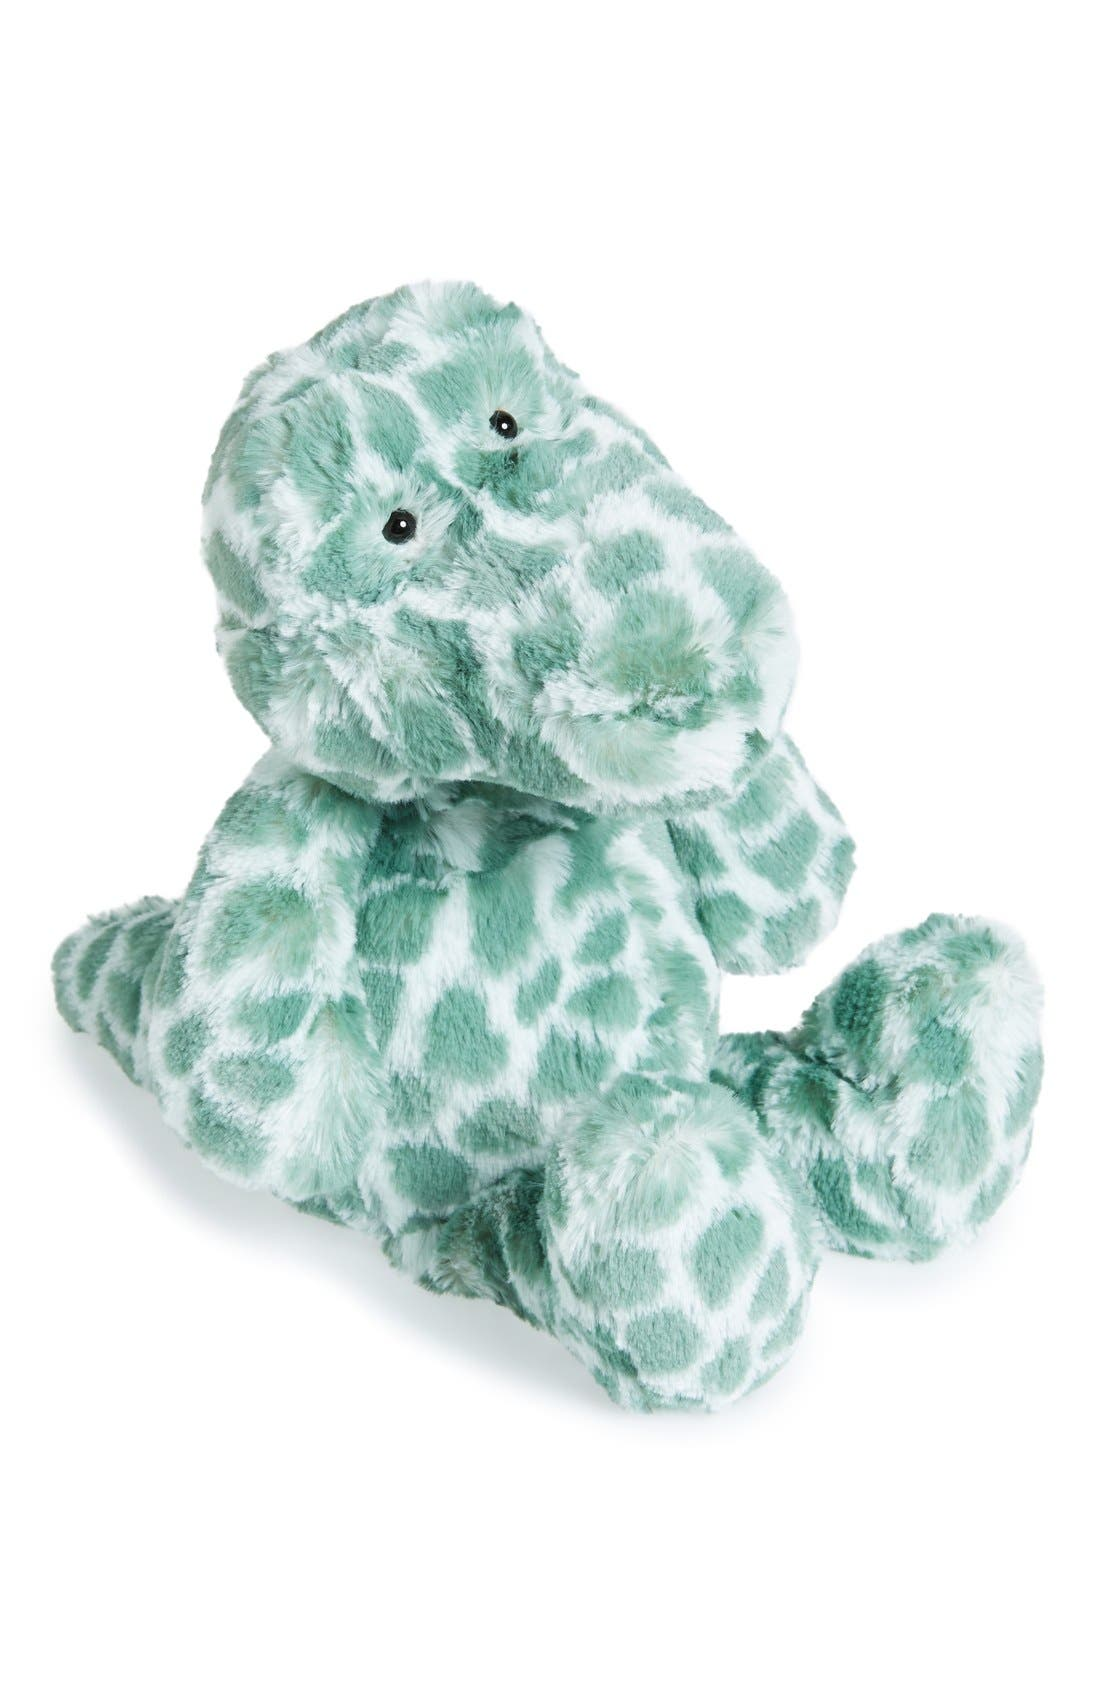 'Dapple Croc' Stuffed Animal,                             Main thumbnail 1, color,                             Teal